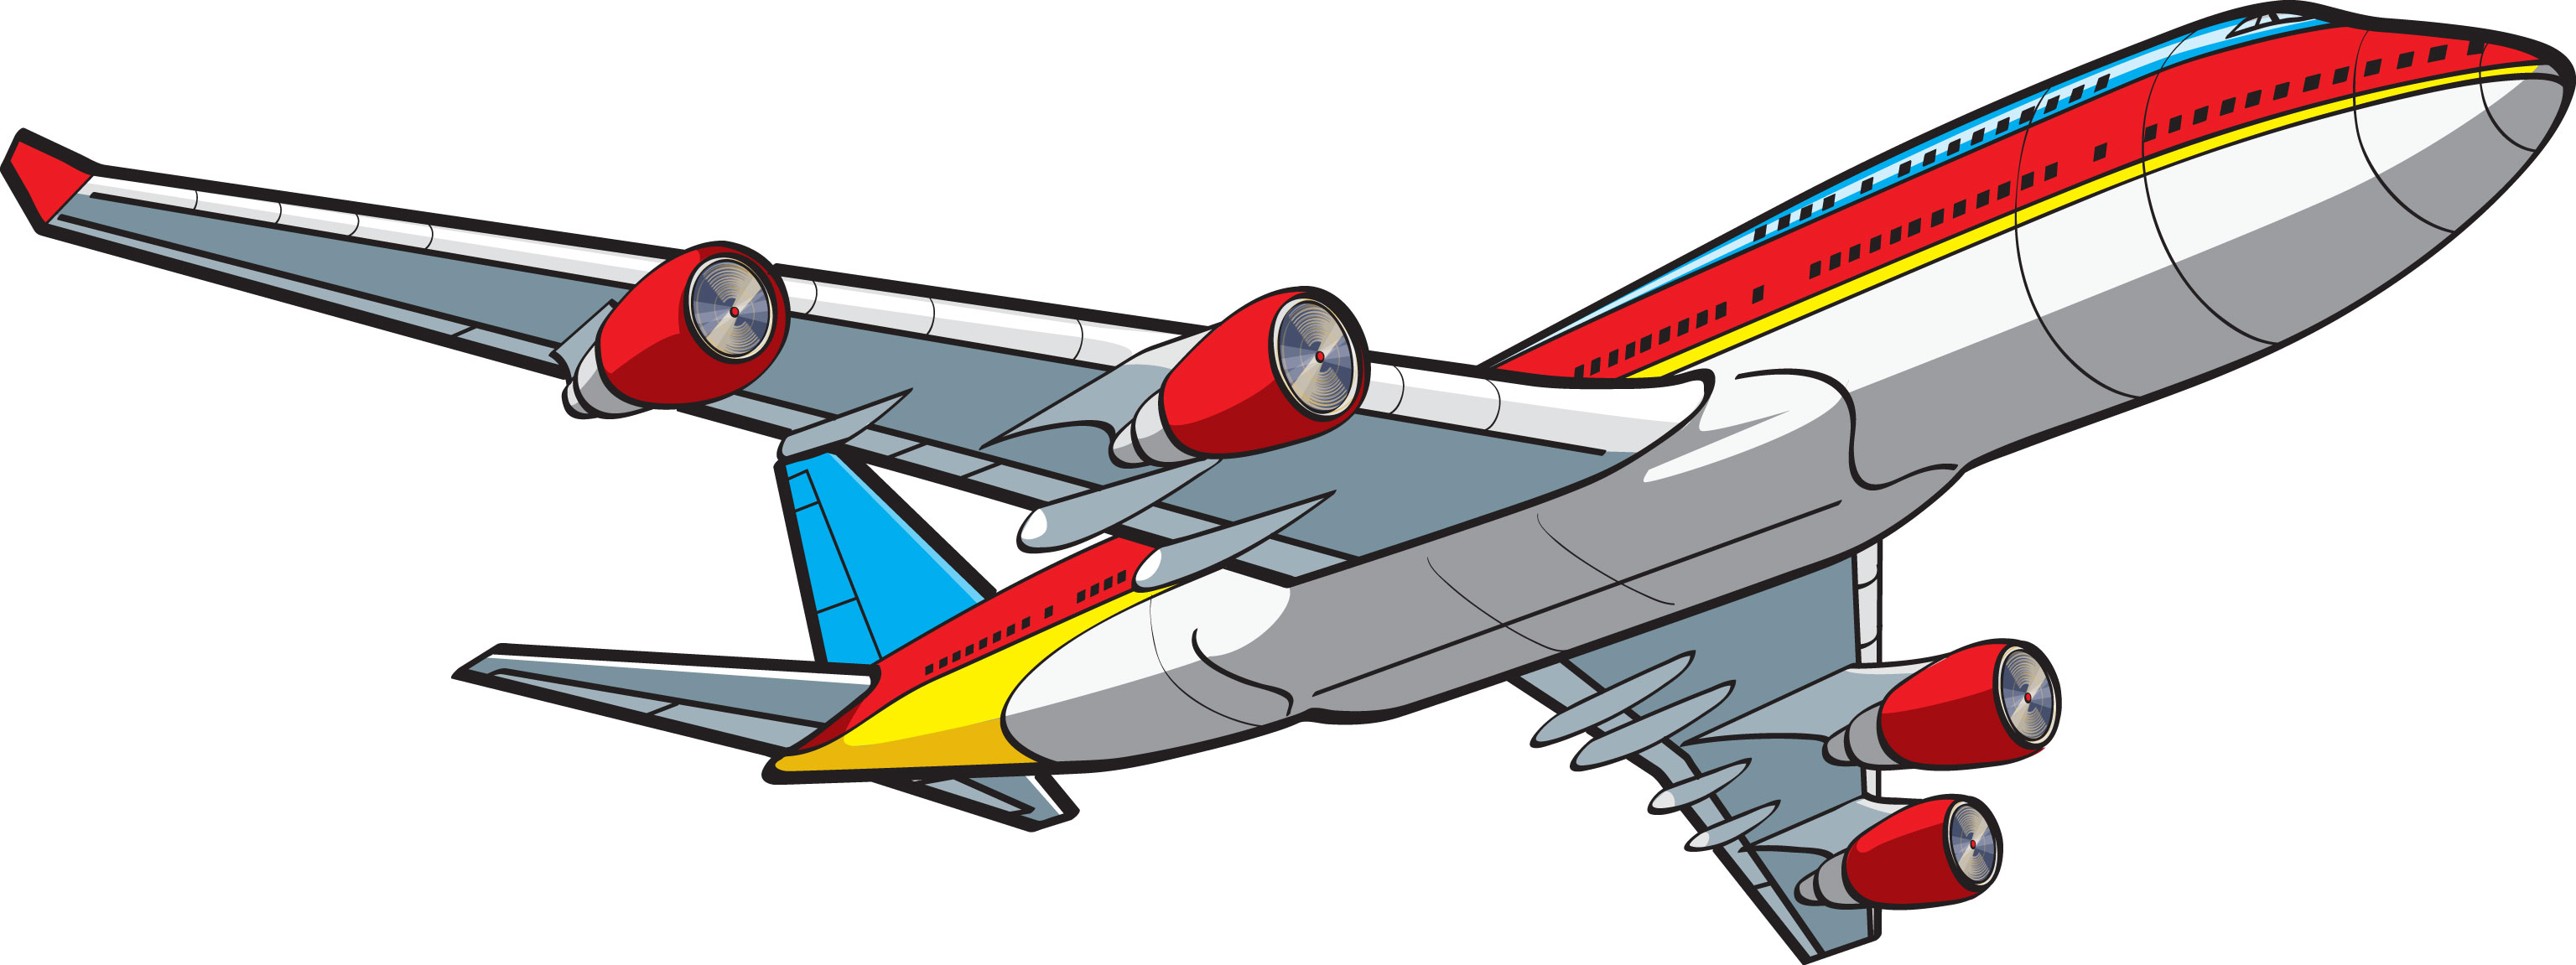 Flight clipart #3, Download drawings